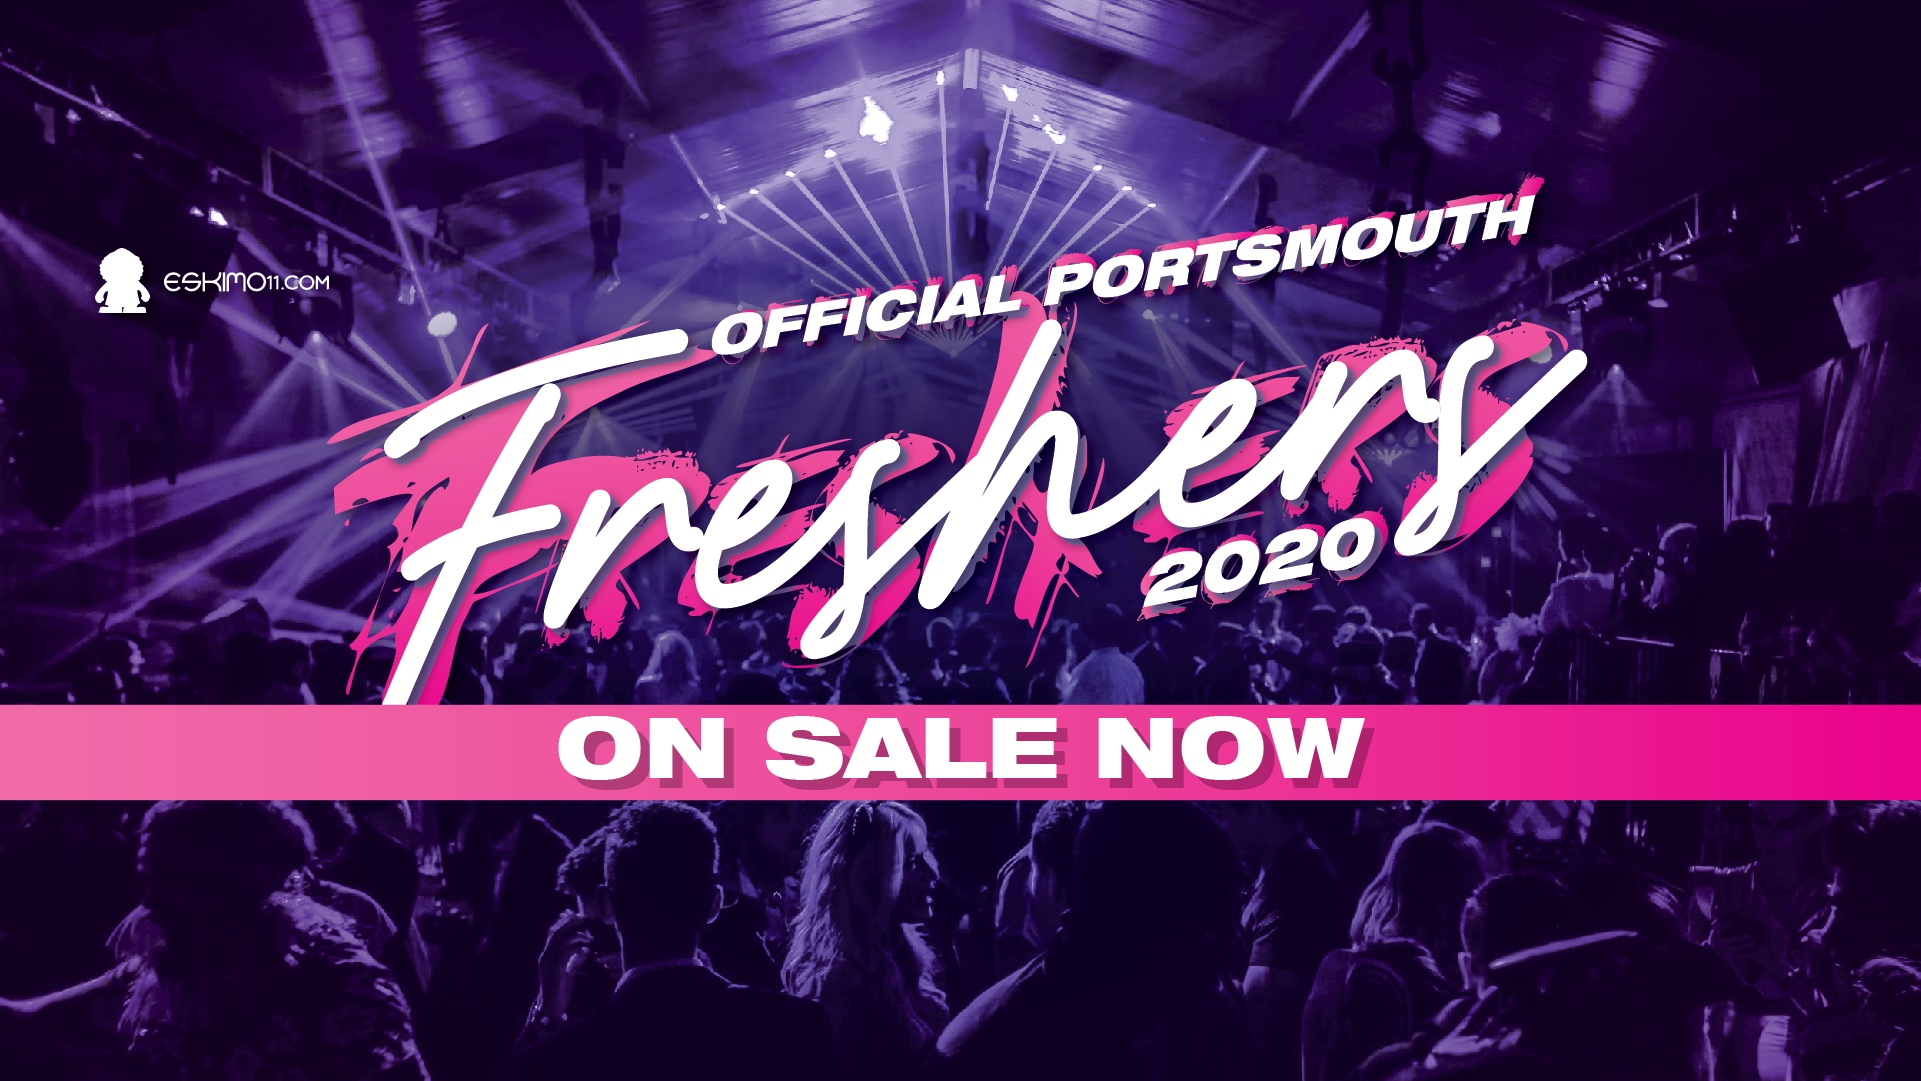 Official Portsmouth University Freshers Pack 2020 inc Freshers Ball